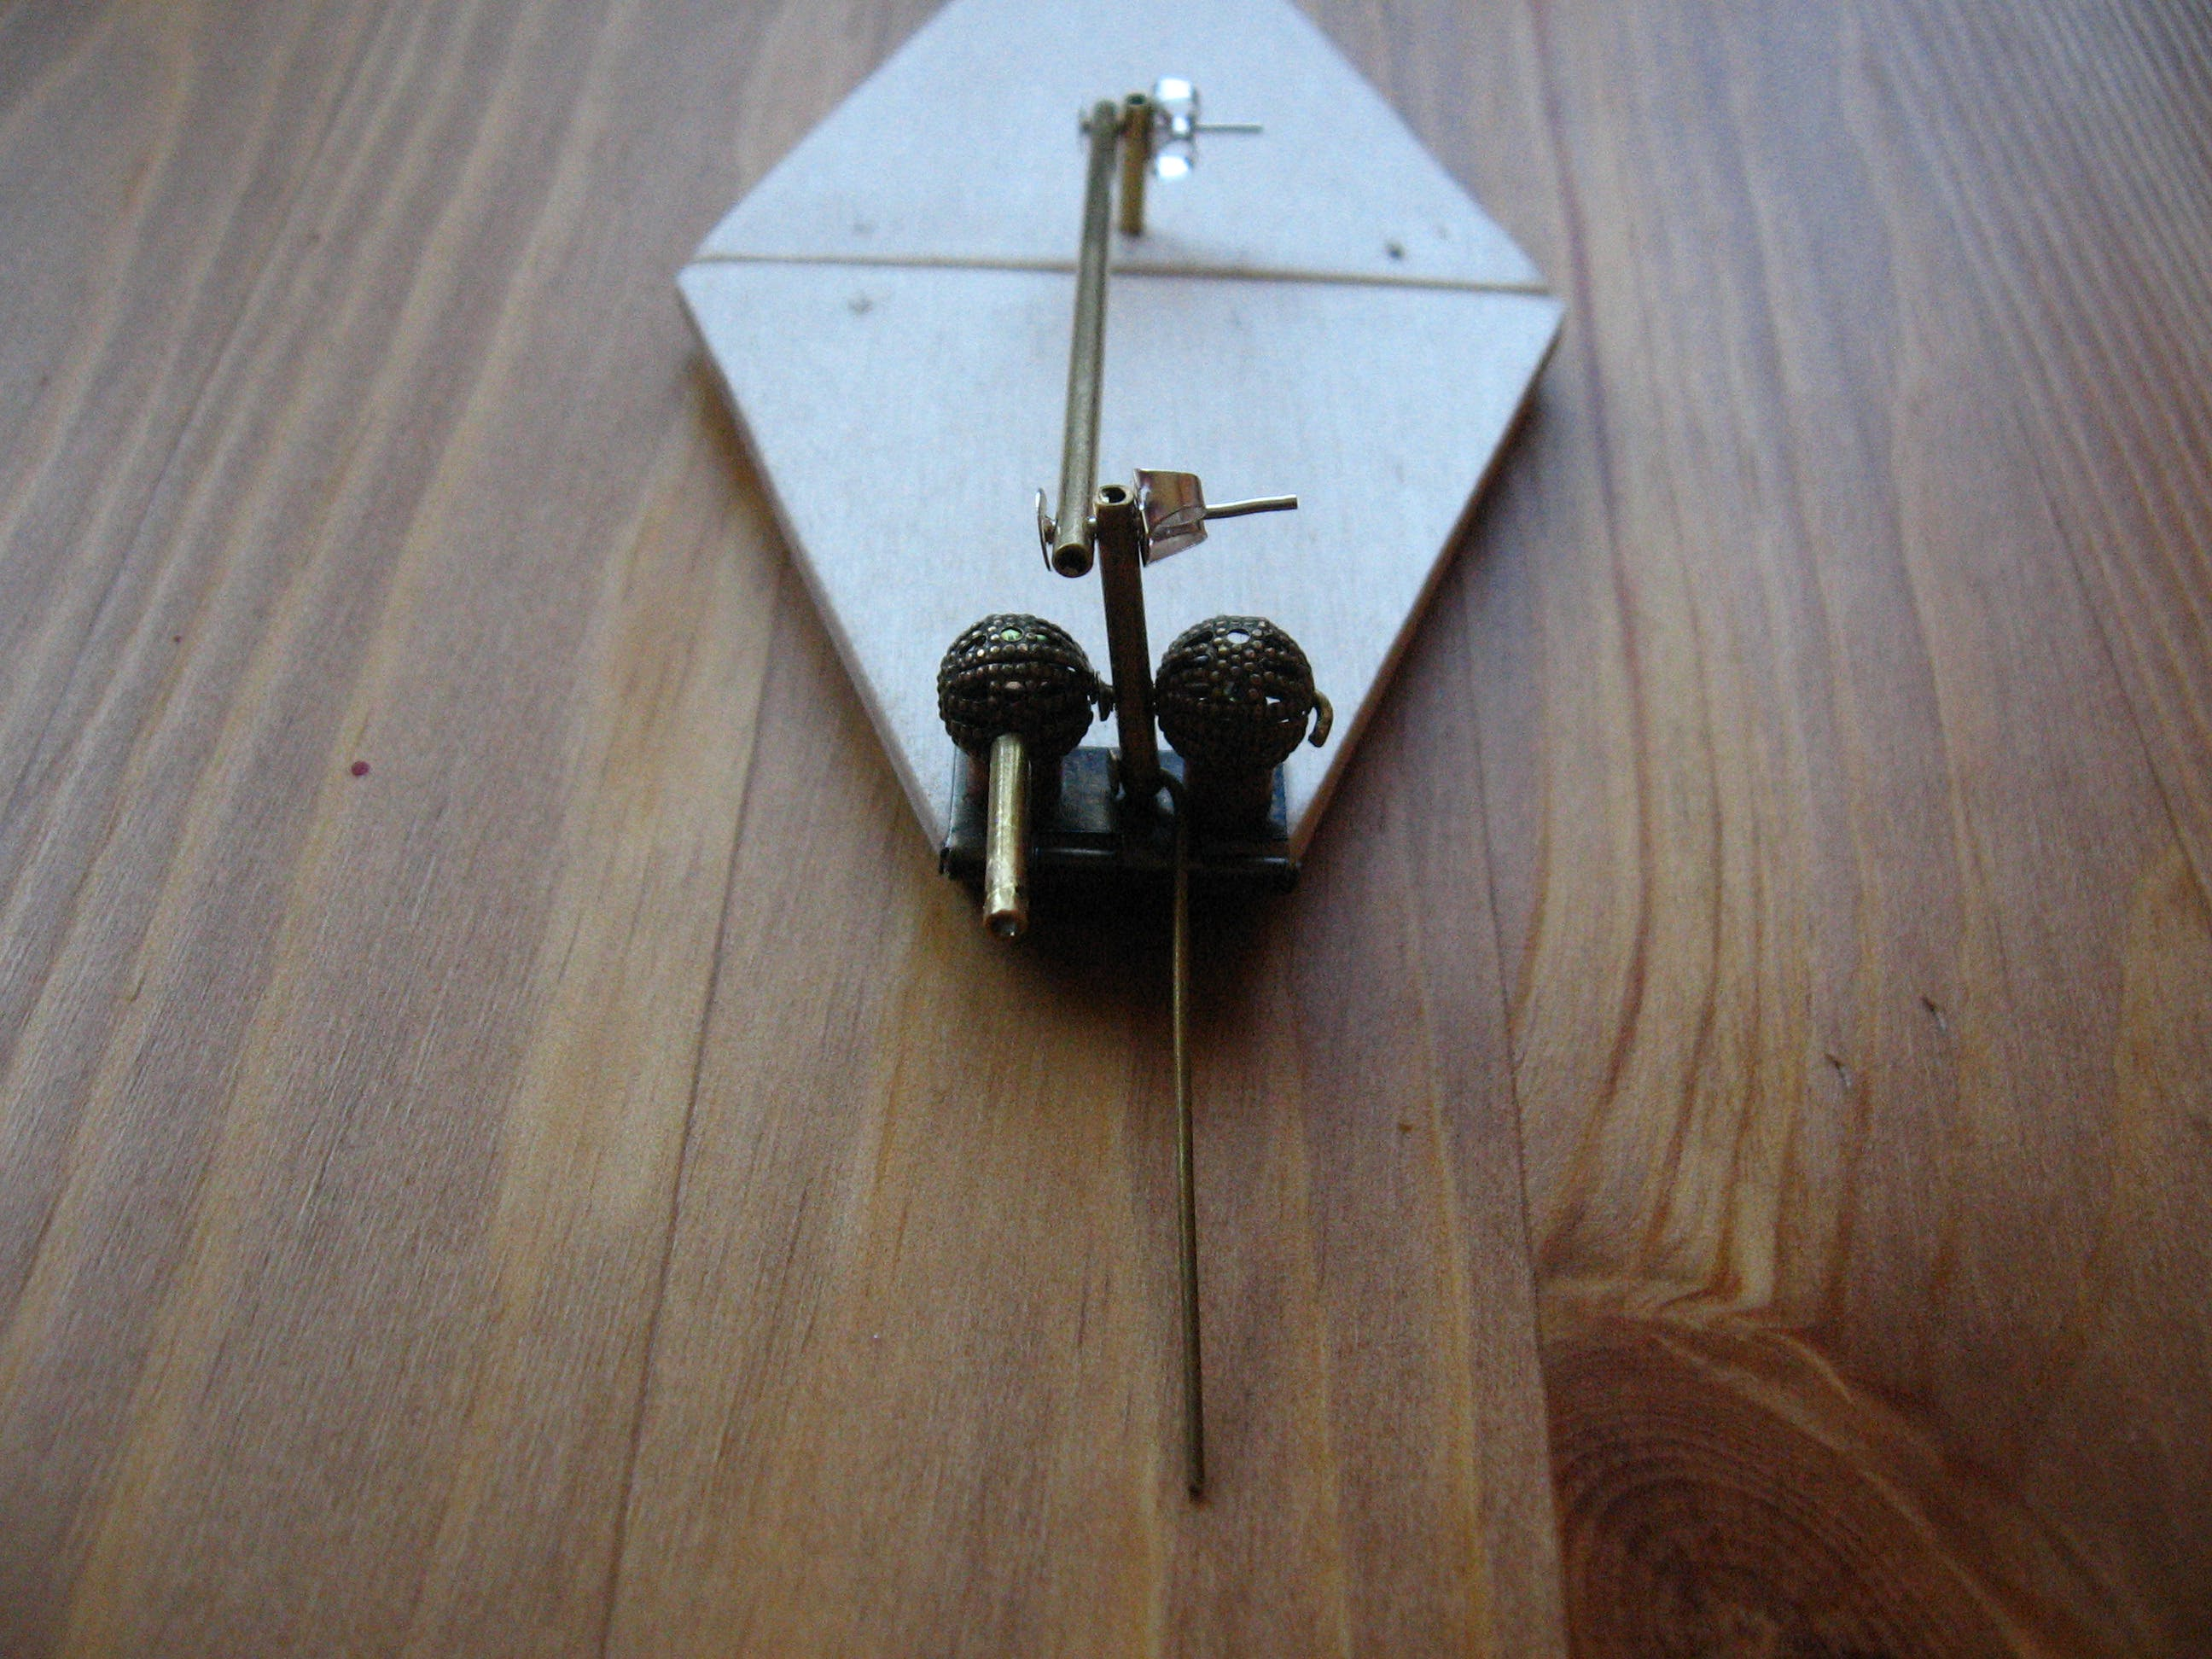 Petal hinge detail with control rods